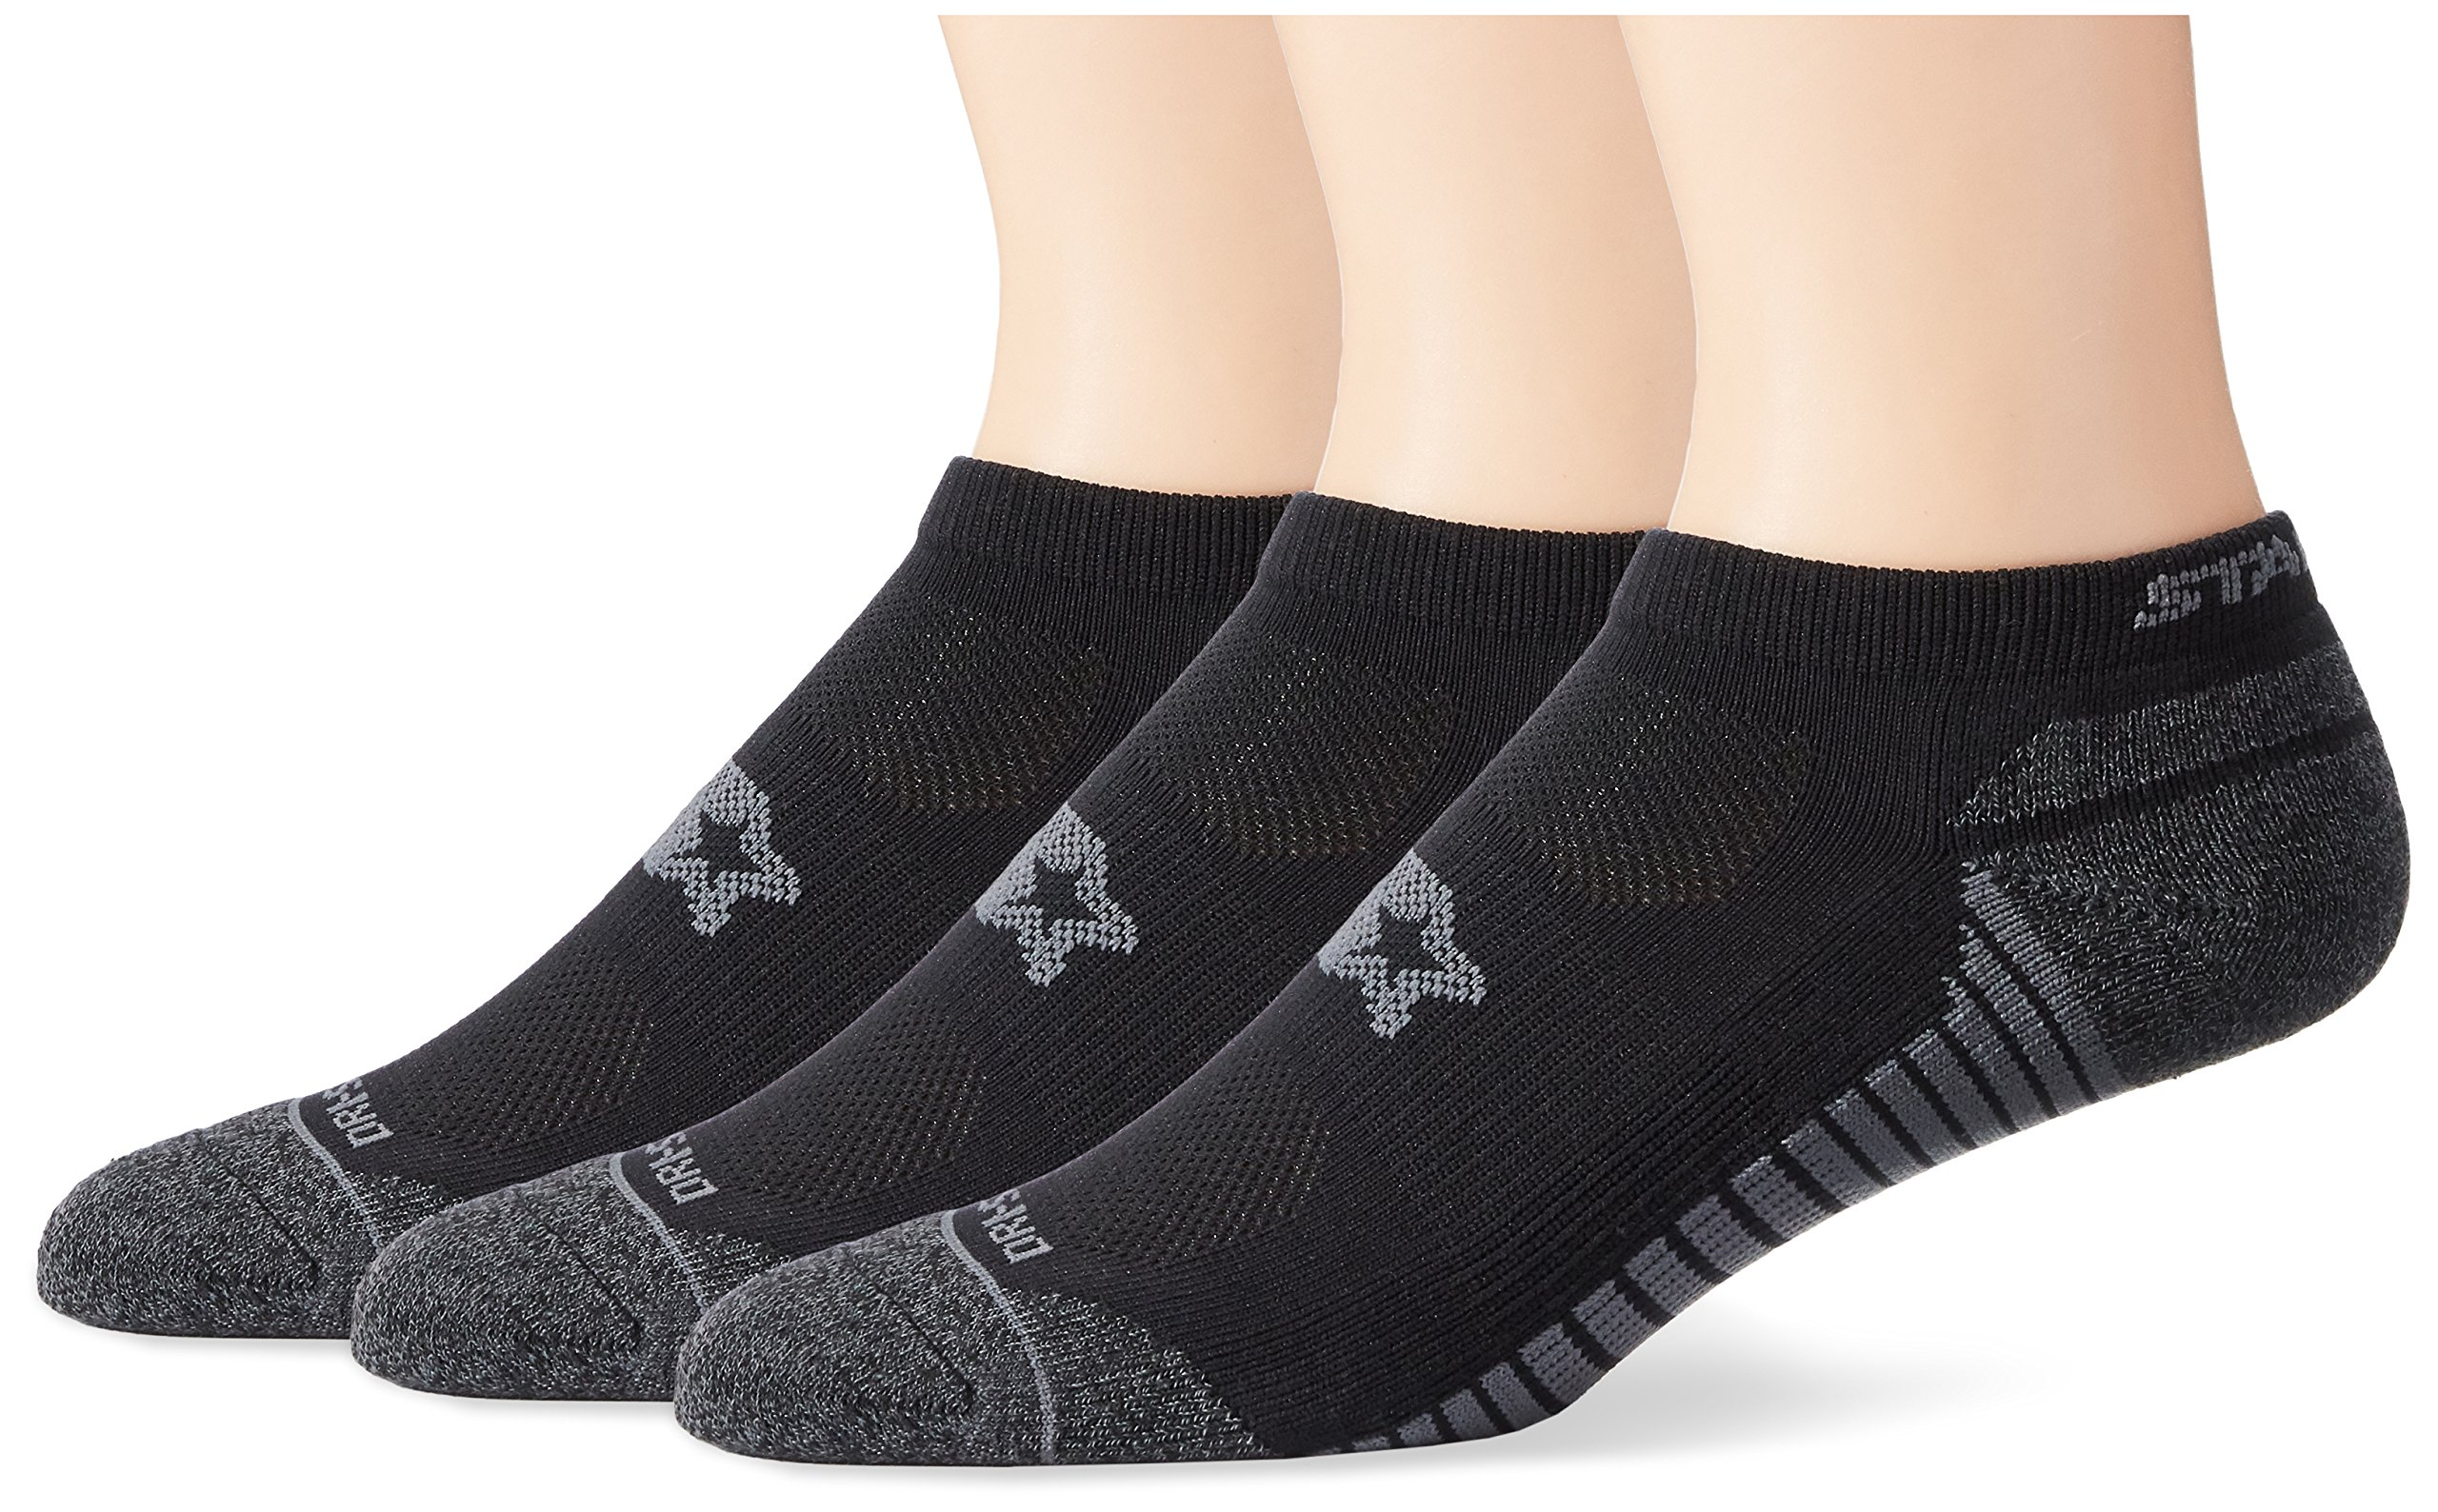 Starter Men's 3-Pack Athletic Microfiber Low-Cut Ankle Socks, Prime Exclusive, Black, Large (Shoe Size 9-12)